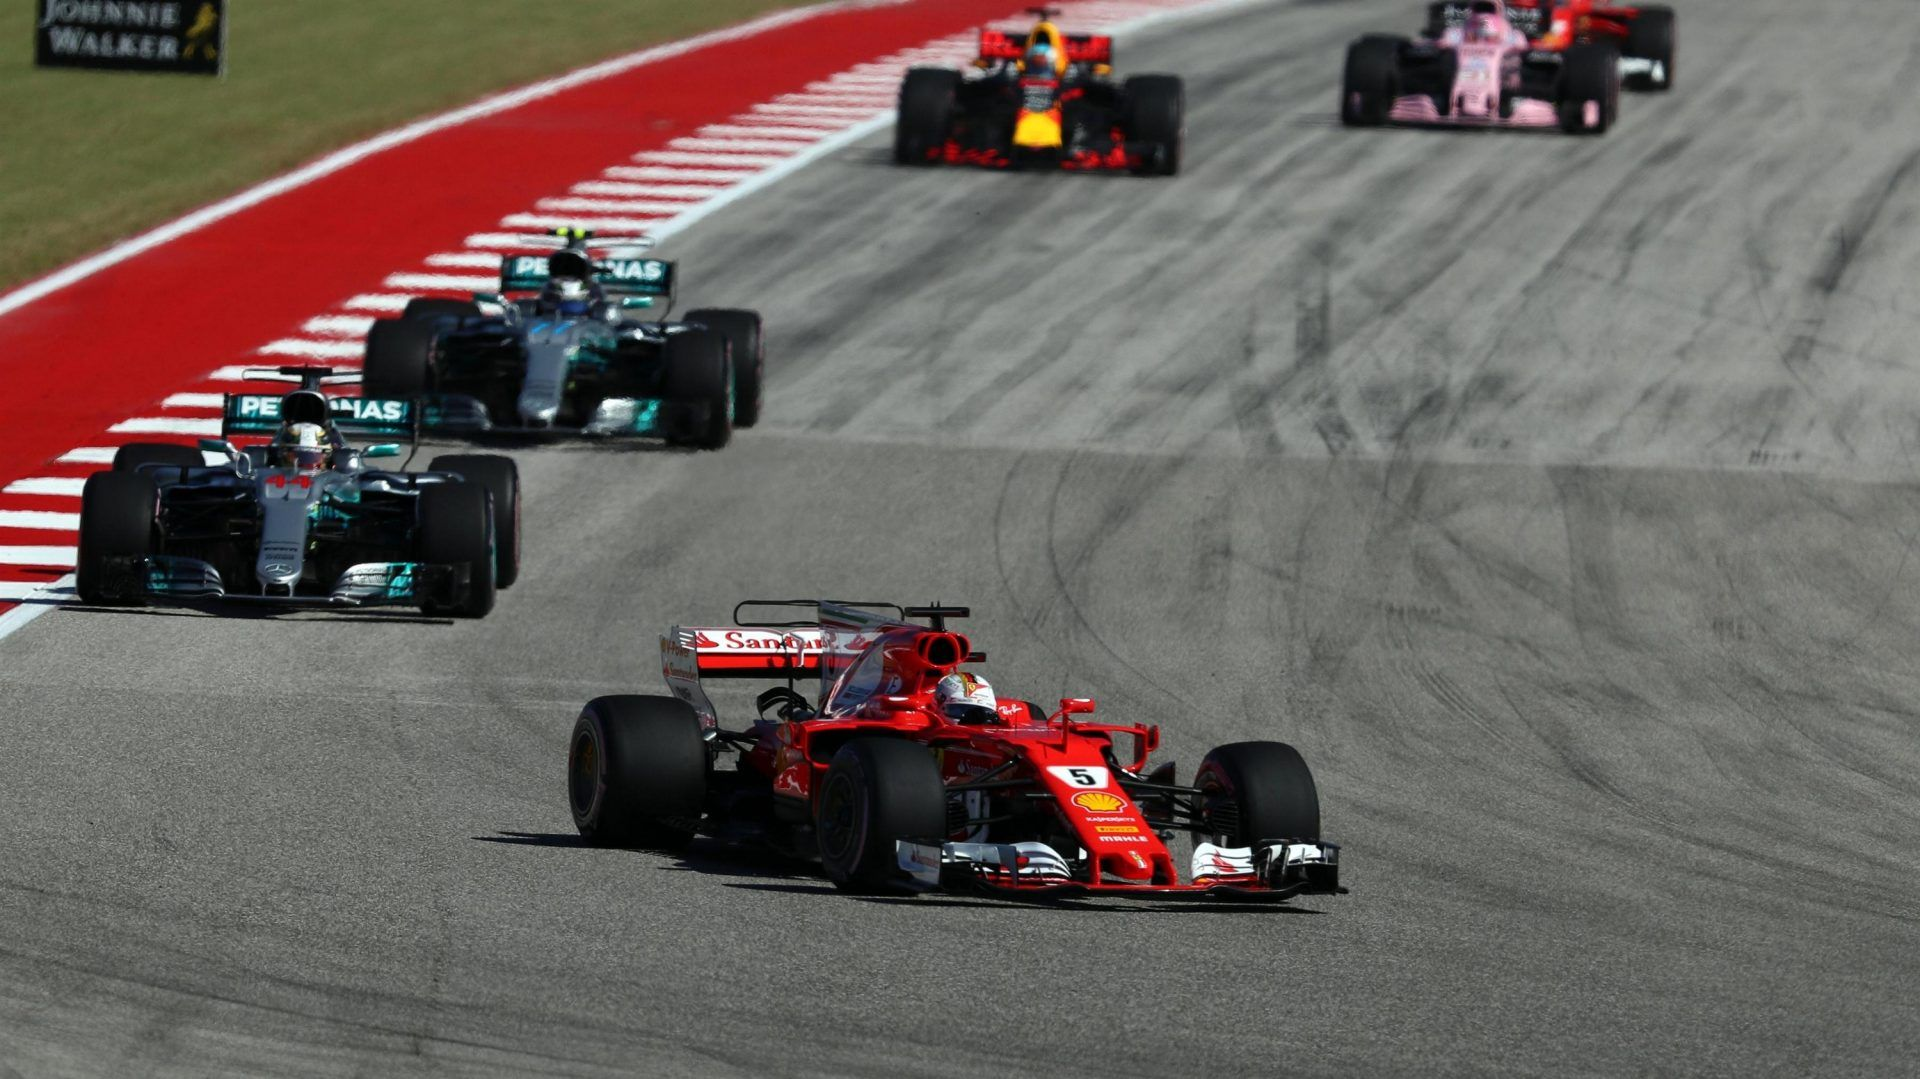 Sebastian Vettel Ferrari SF70-H Leads At The Start Of The